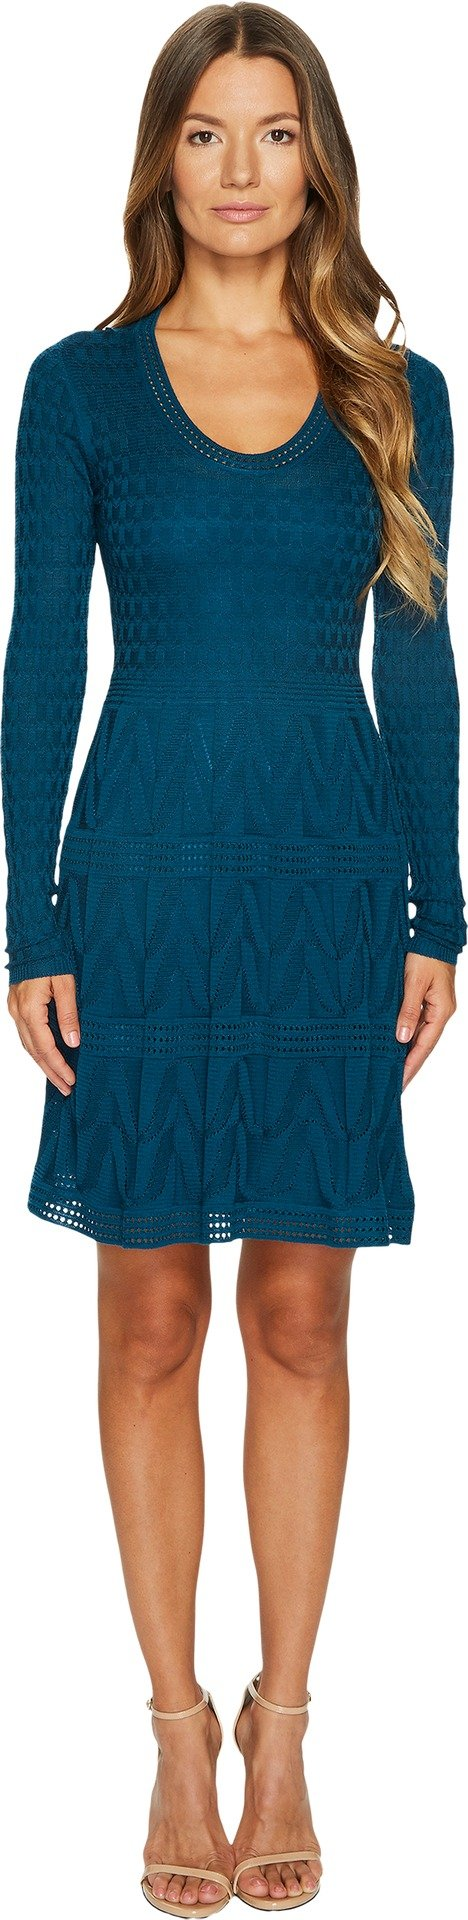 M Missoni Women's Solid Knit Scoop Neck Long Sleeve Dress Teal 44 - Vancelette Global Art Acquisitions